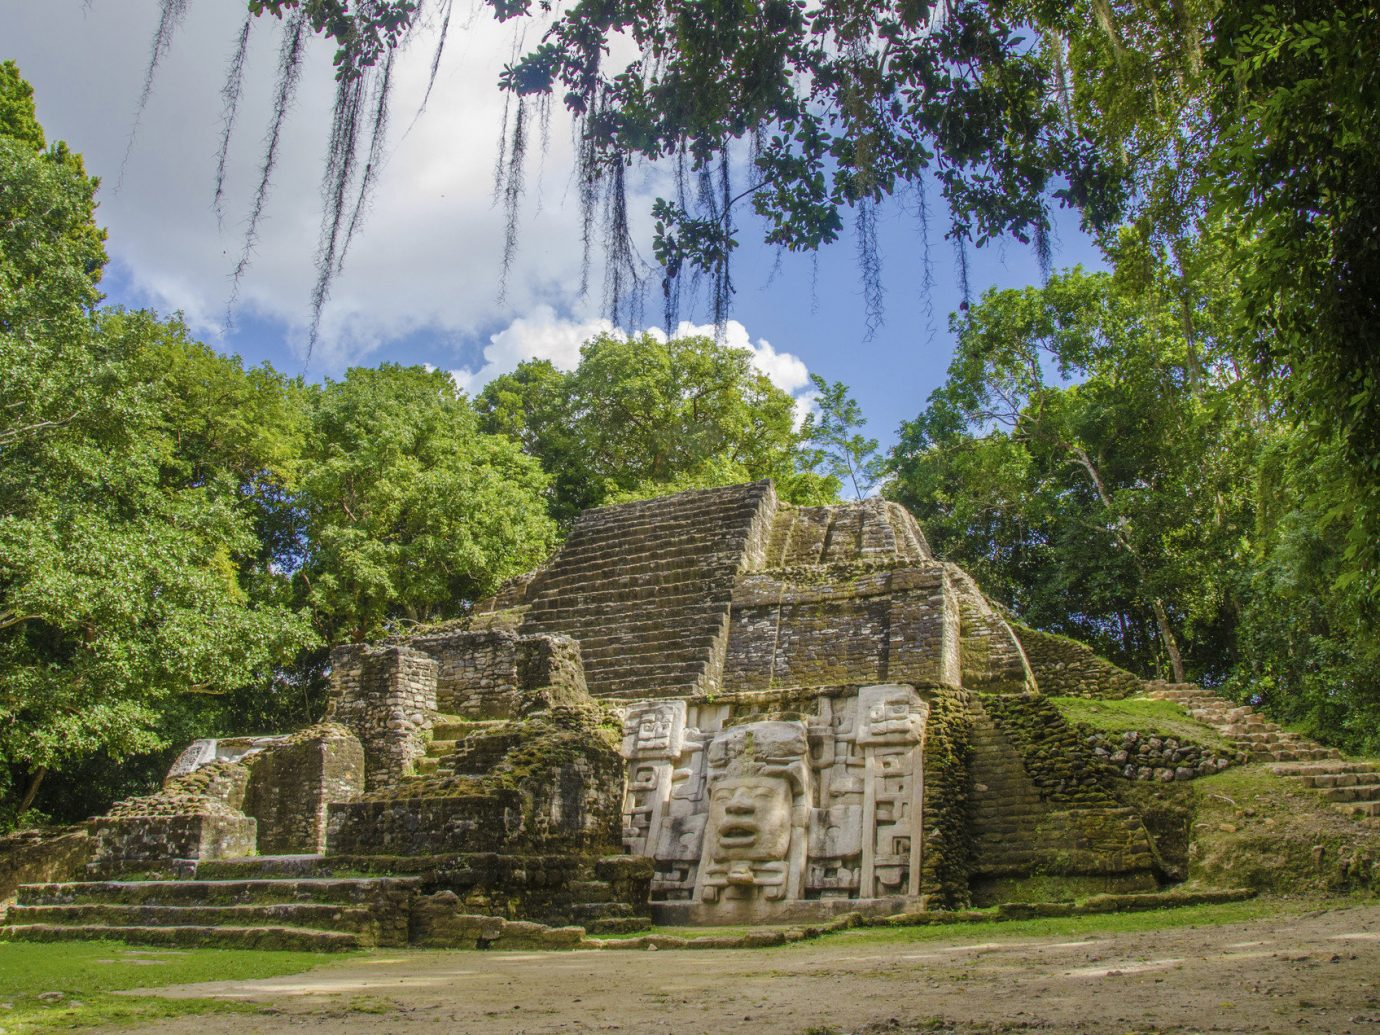 Beach Trip Ideas tree grass outdoor archaeological site Ruins building rural area estate maya civilization Village place of worship plant surrounded stone